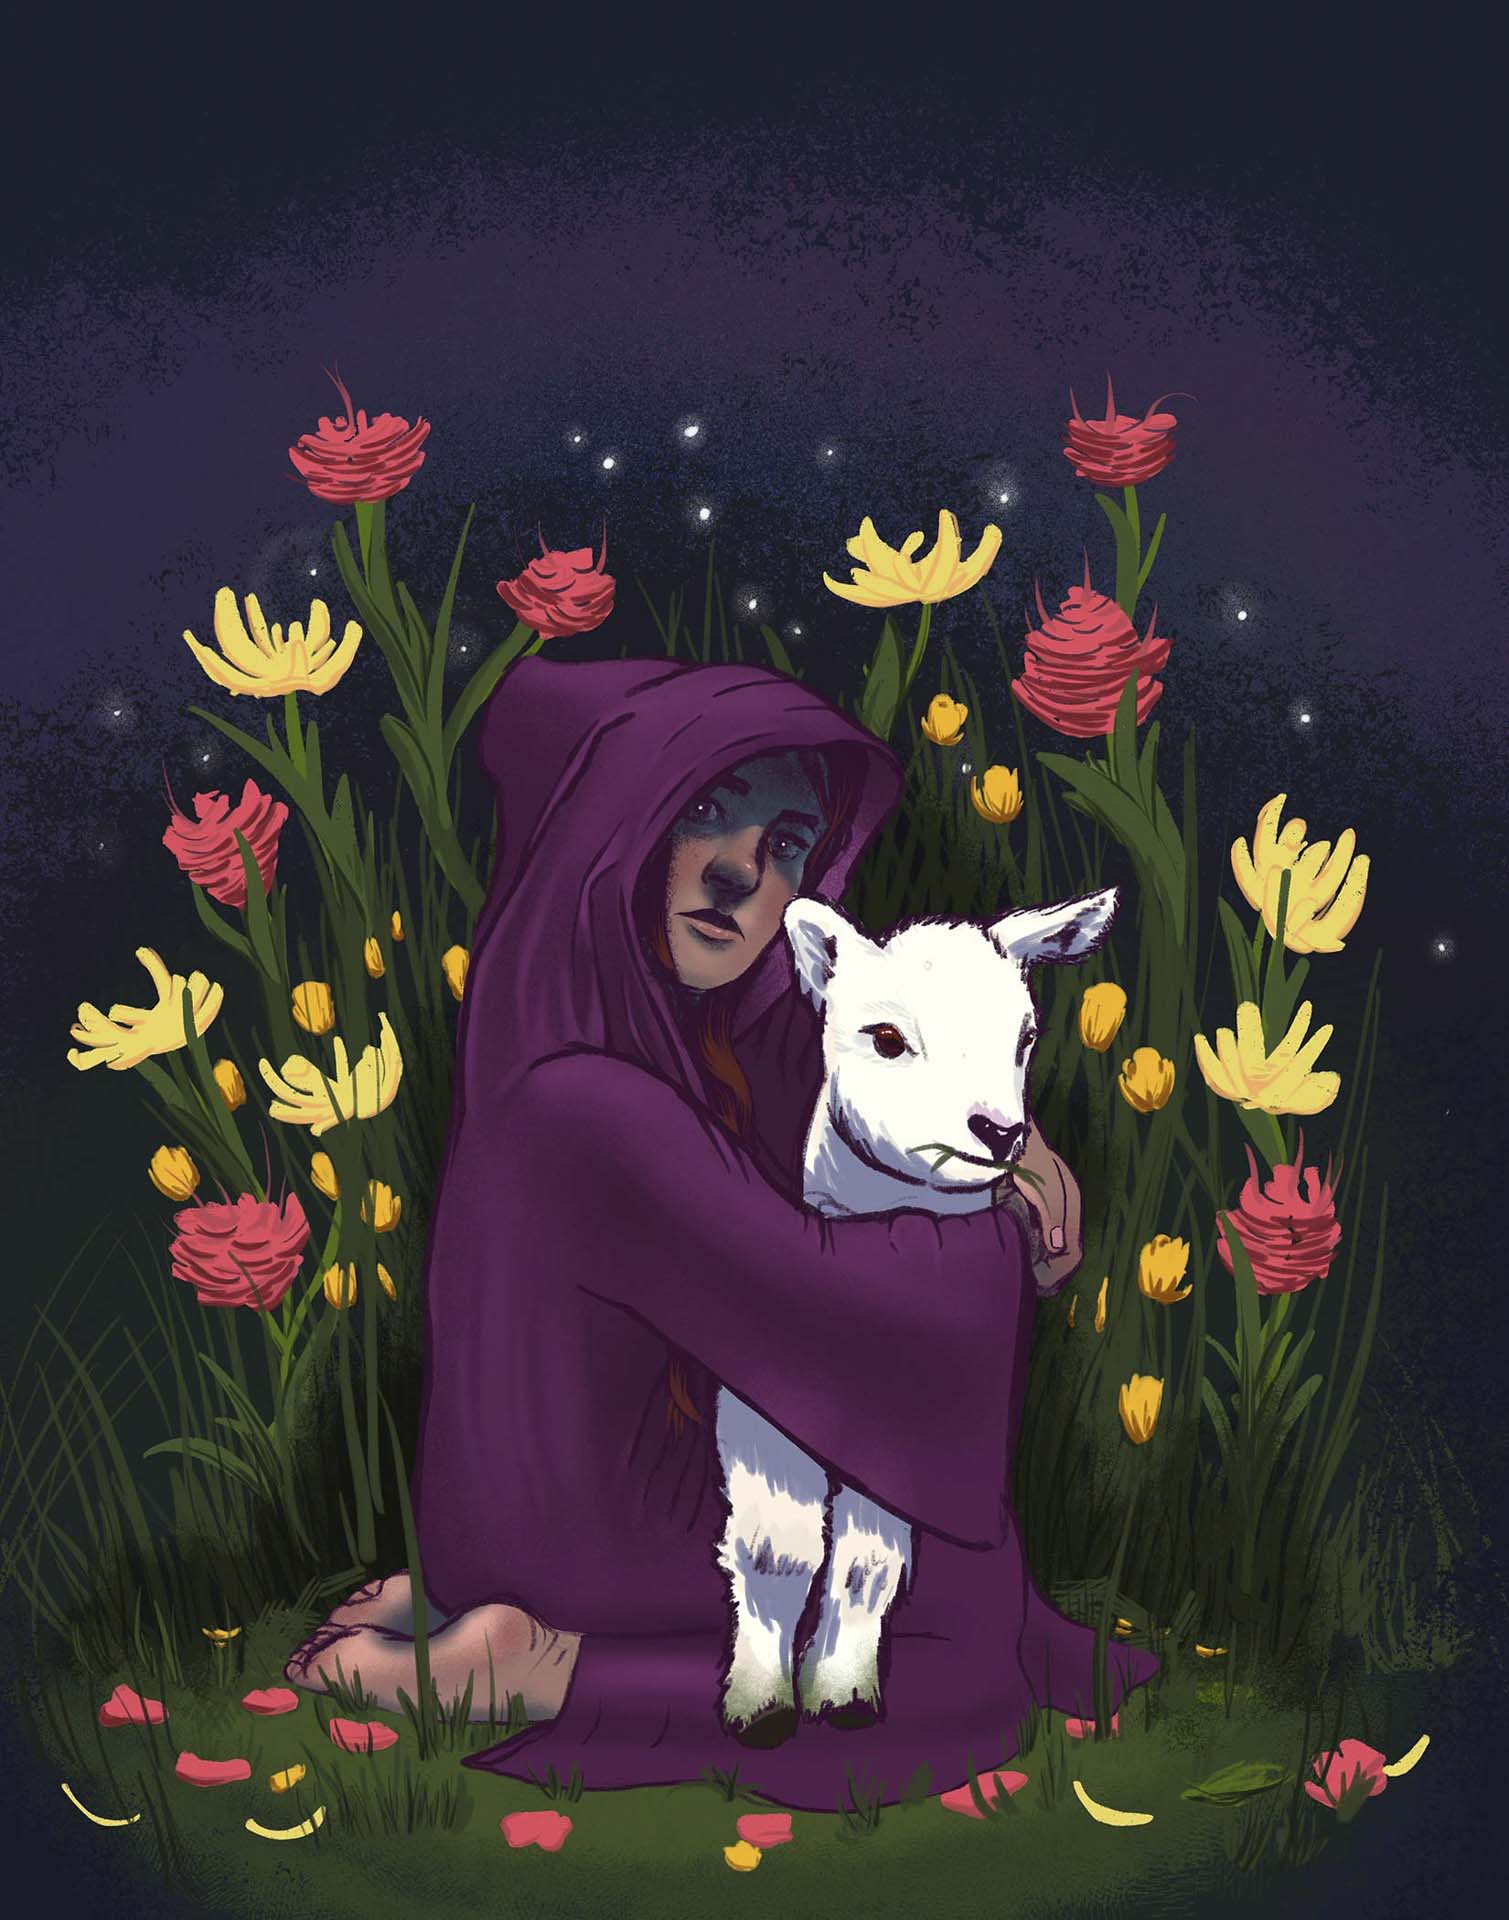 Girl clutches lamb. Lamb eats grass. Digital art that was originally intended to be a loose sketch for a watercolor painting. Got carried away.